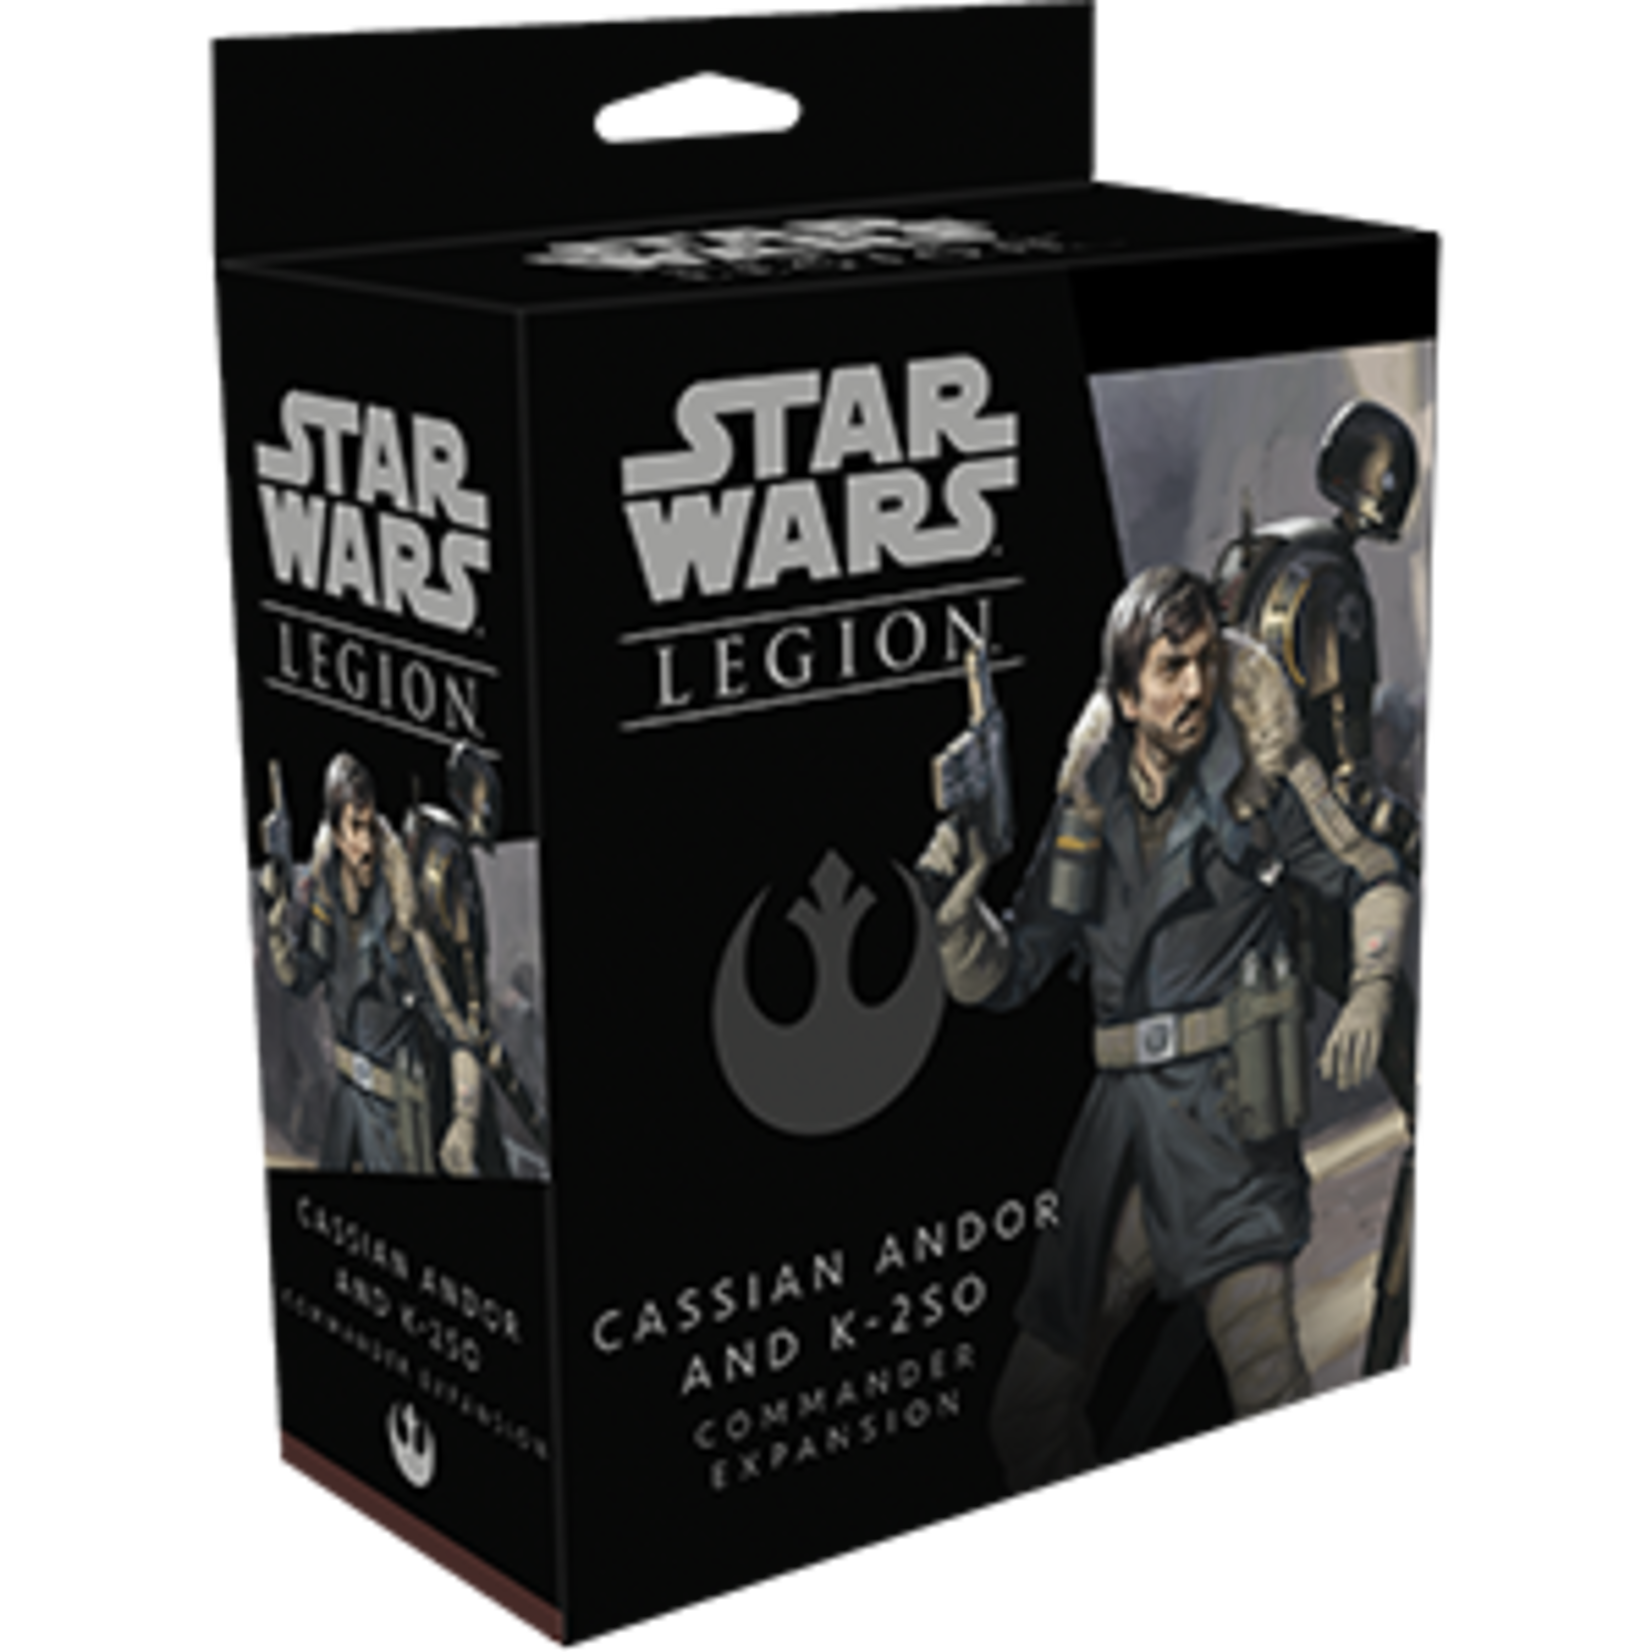 Asmodee Cassian Andor and K-2SO Expansion